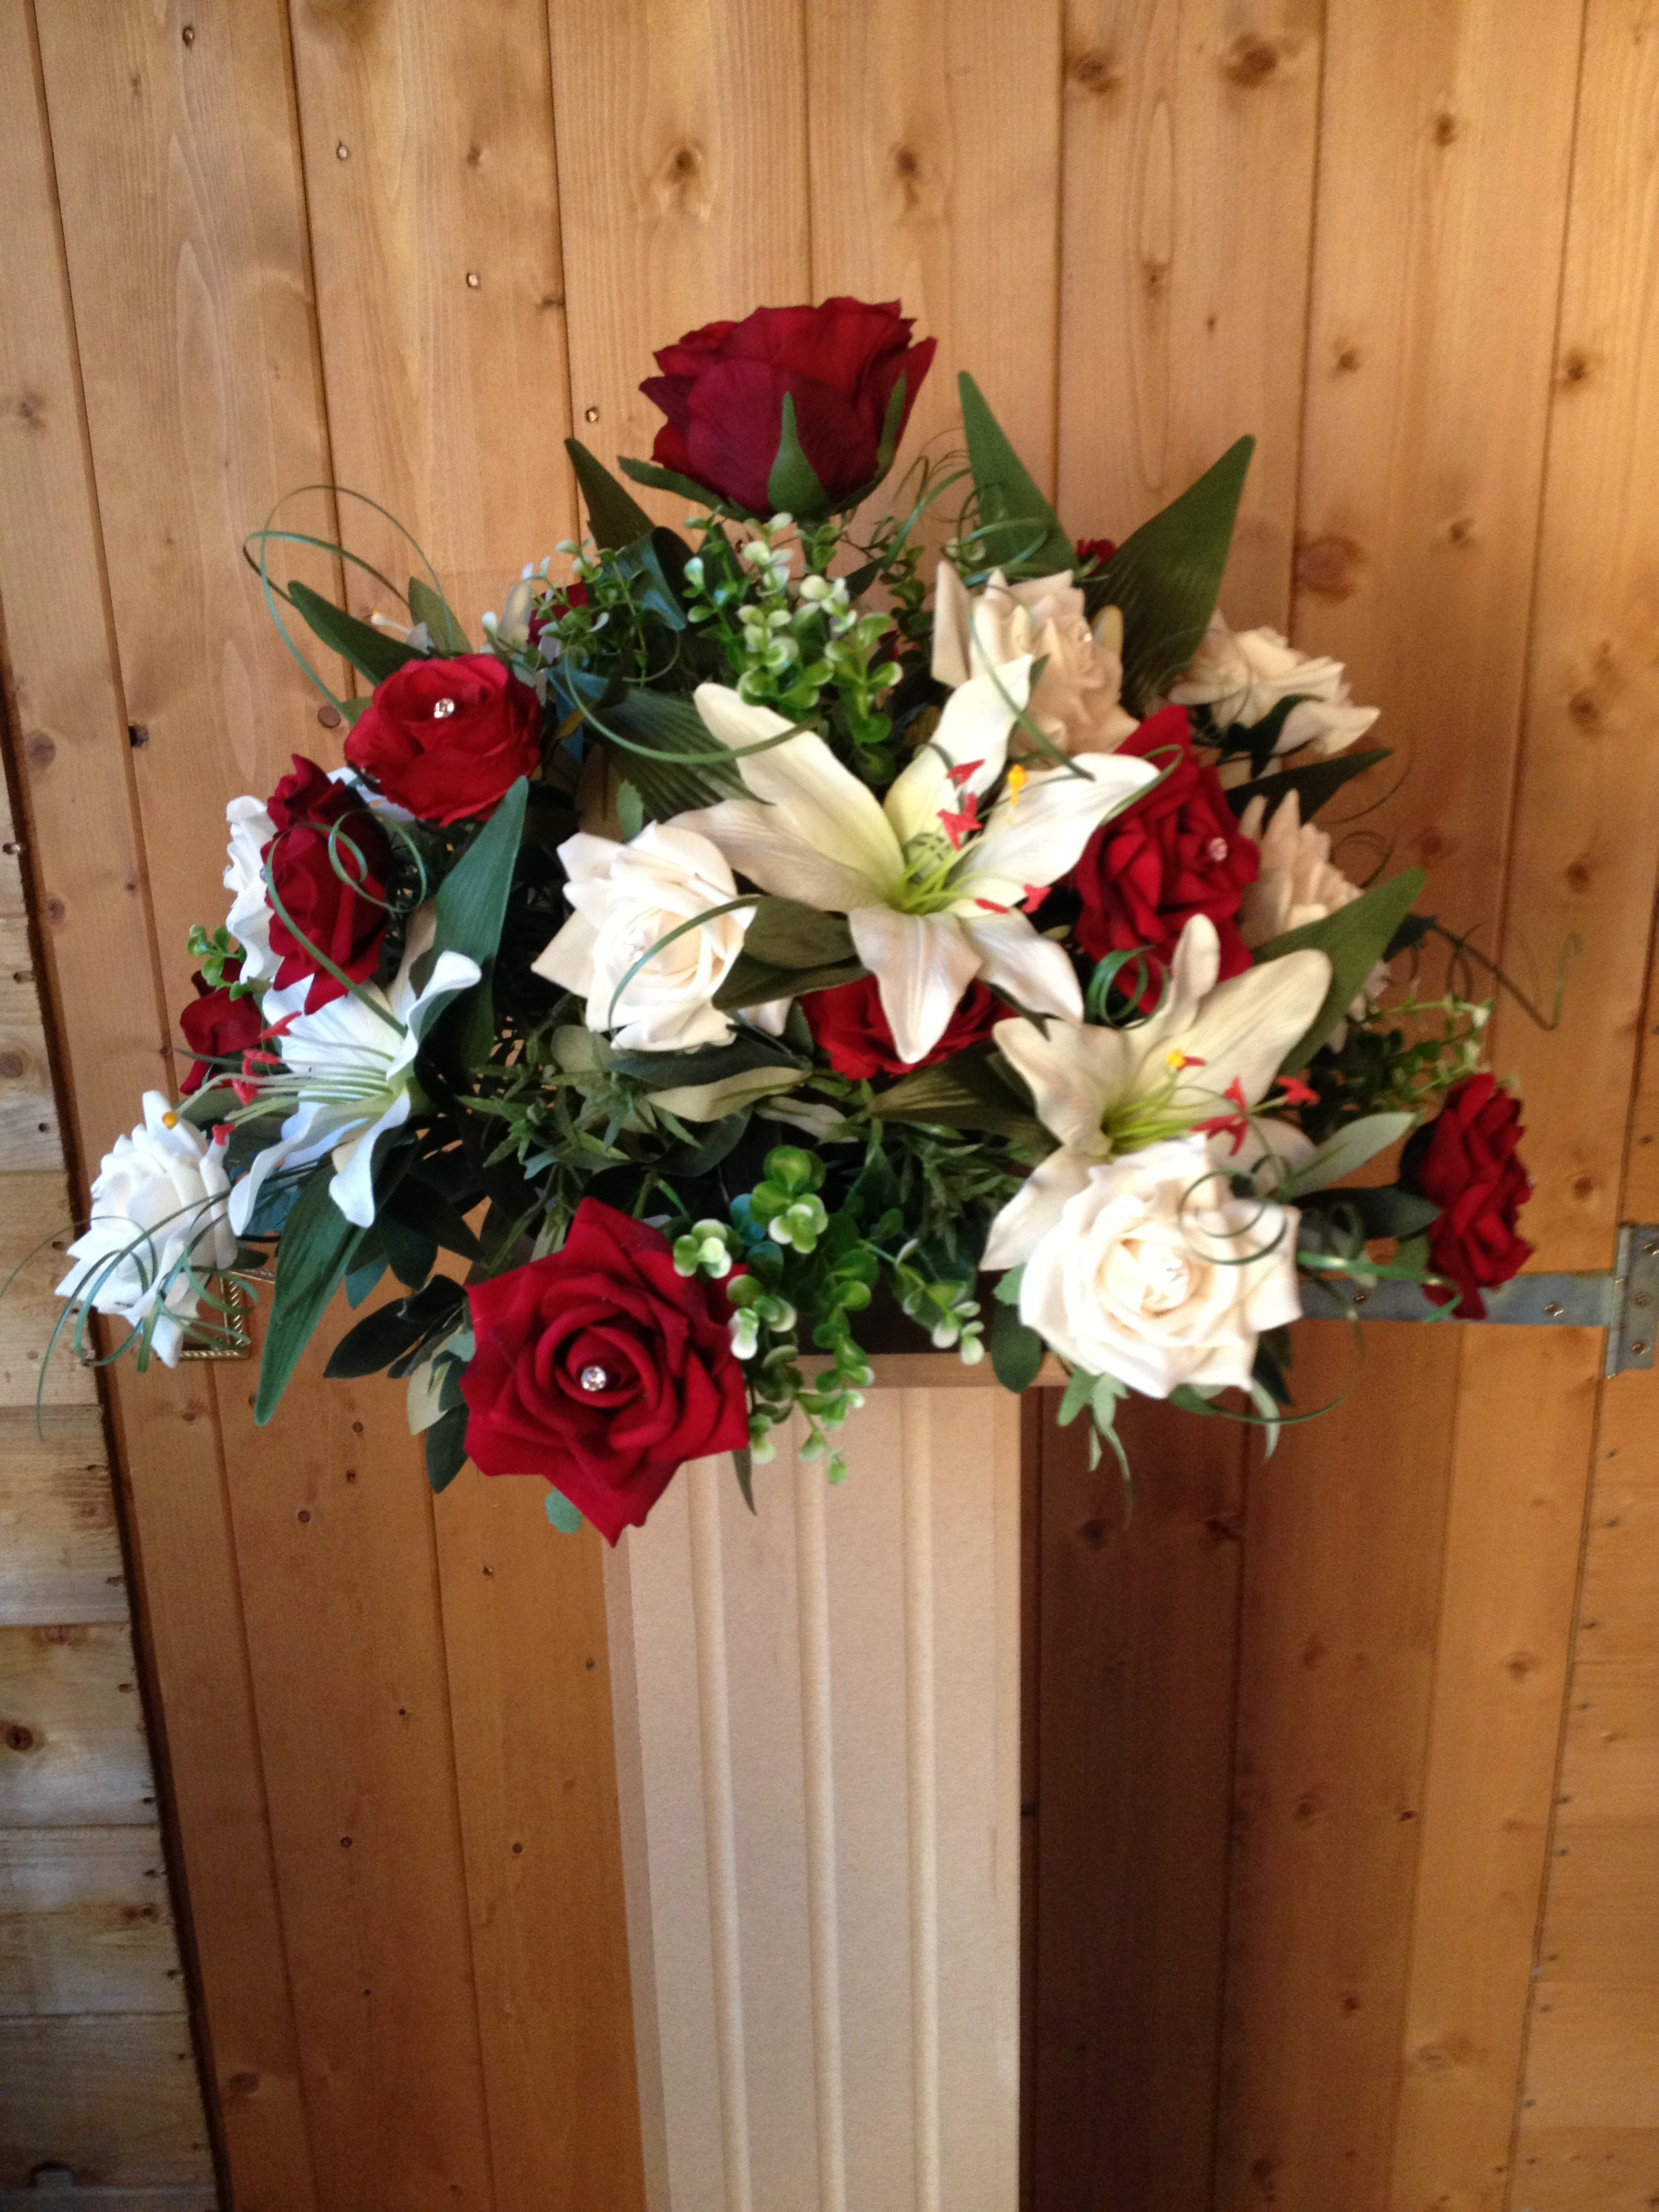 Ceremony Dome Displays - To Sit On Columns, With Ivory Star Gazer Lilies, Red & Ivory Roses